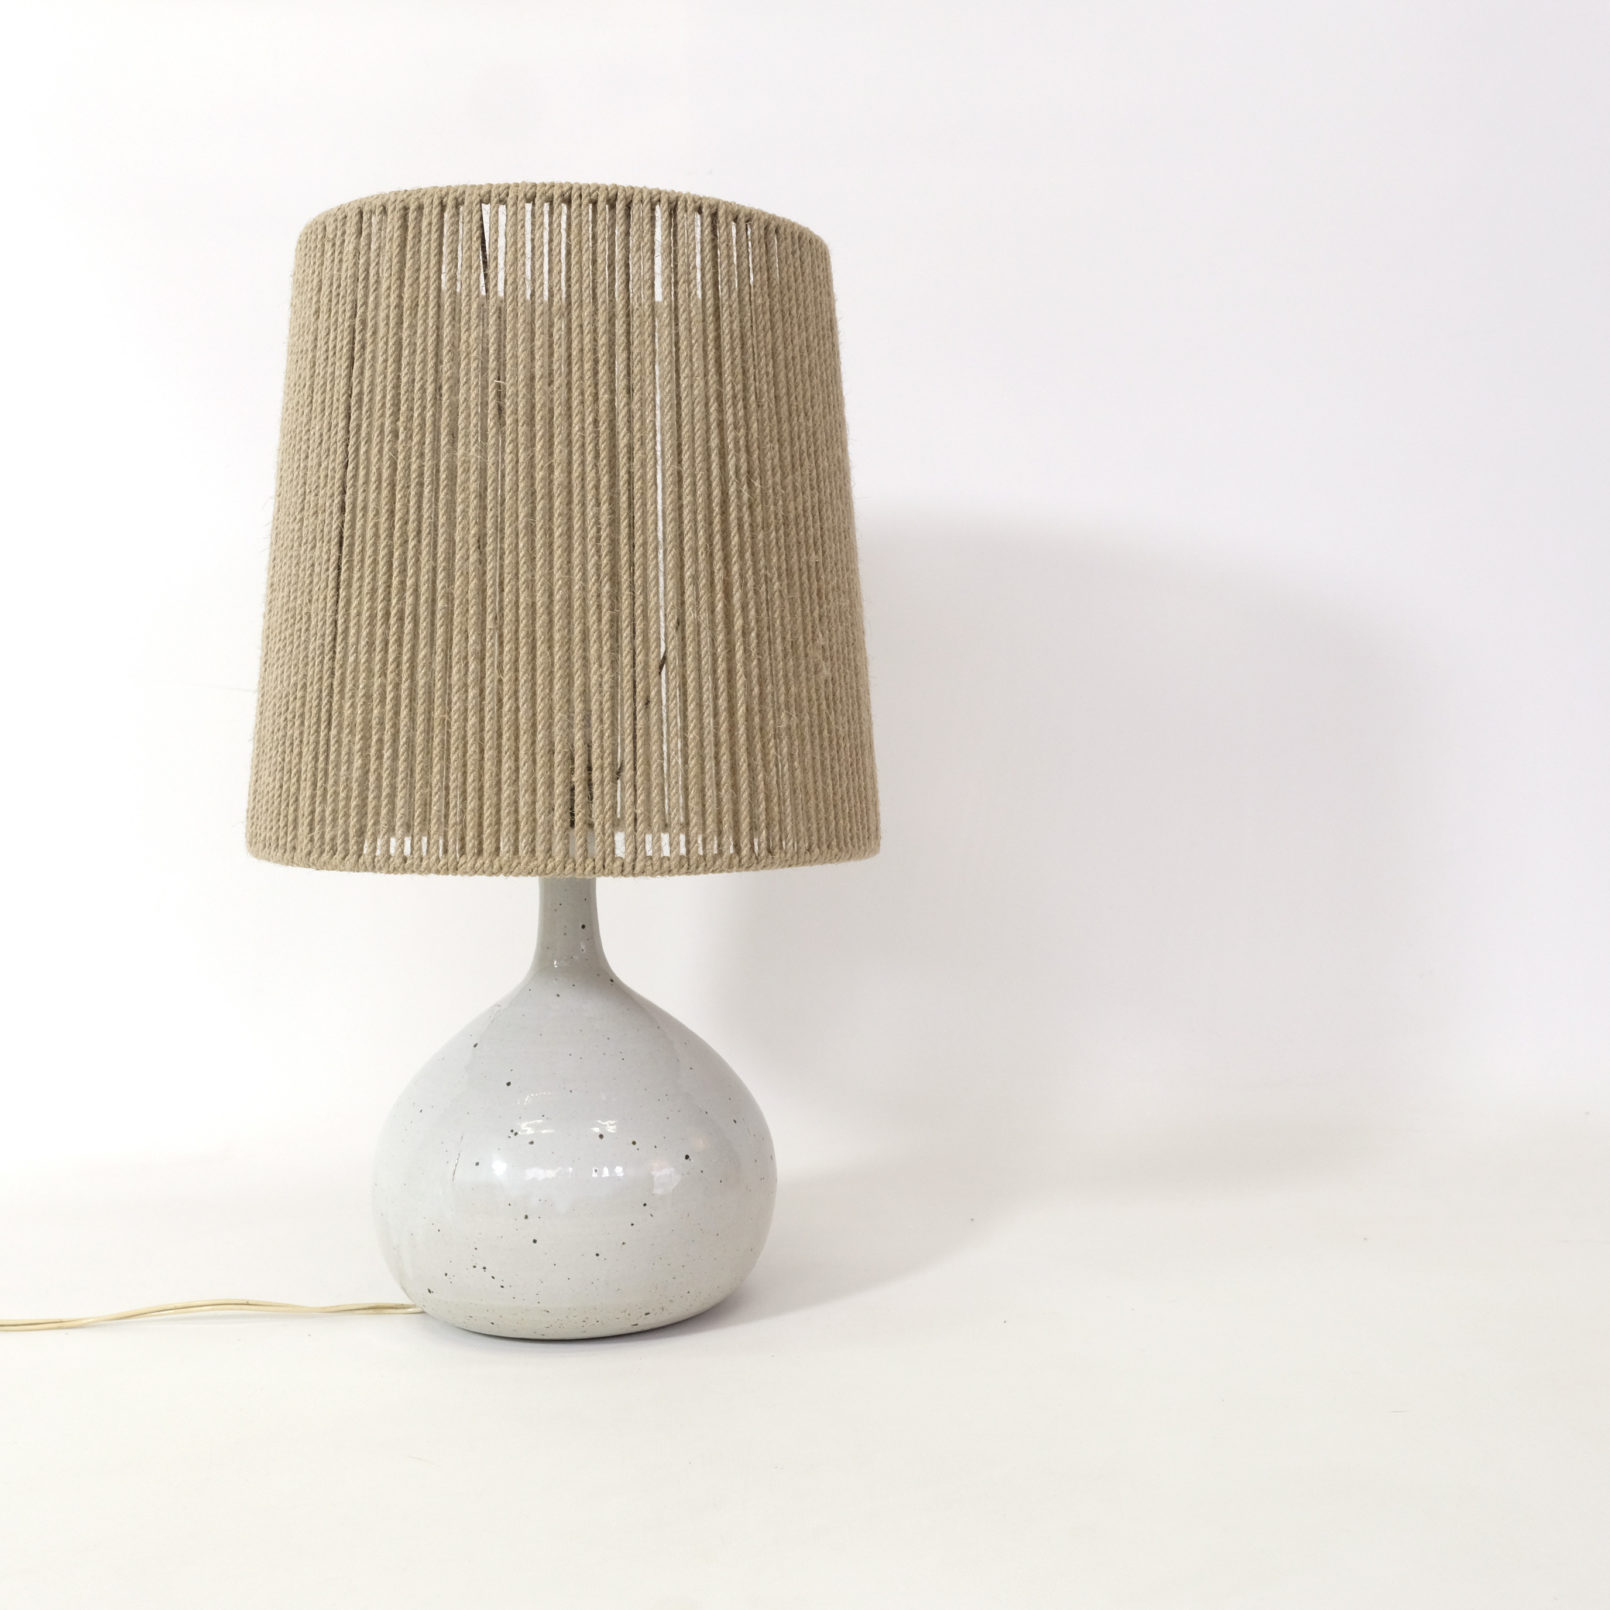 Table lamp with a white earthenware base, 1960s.